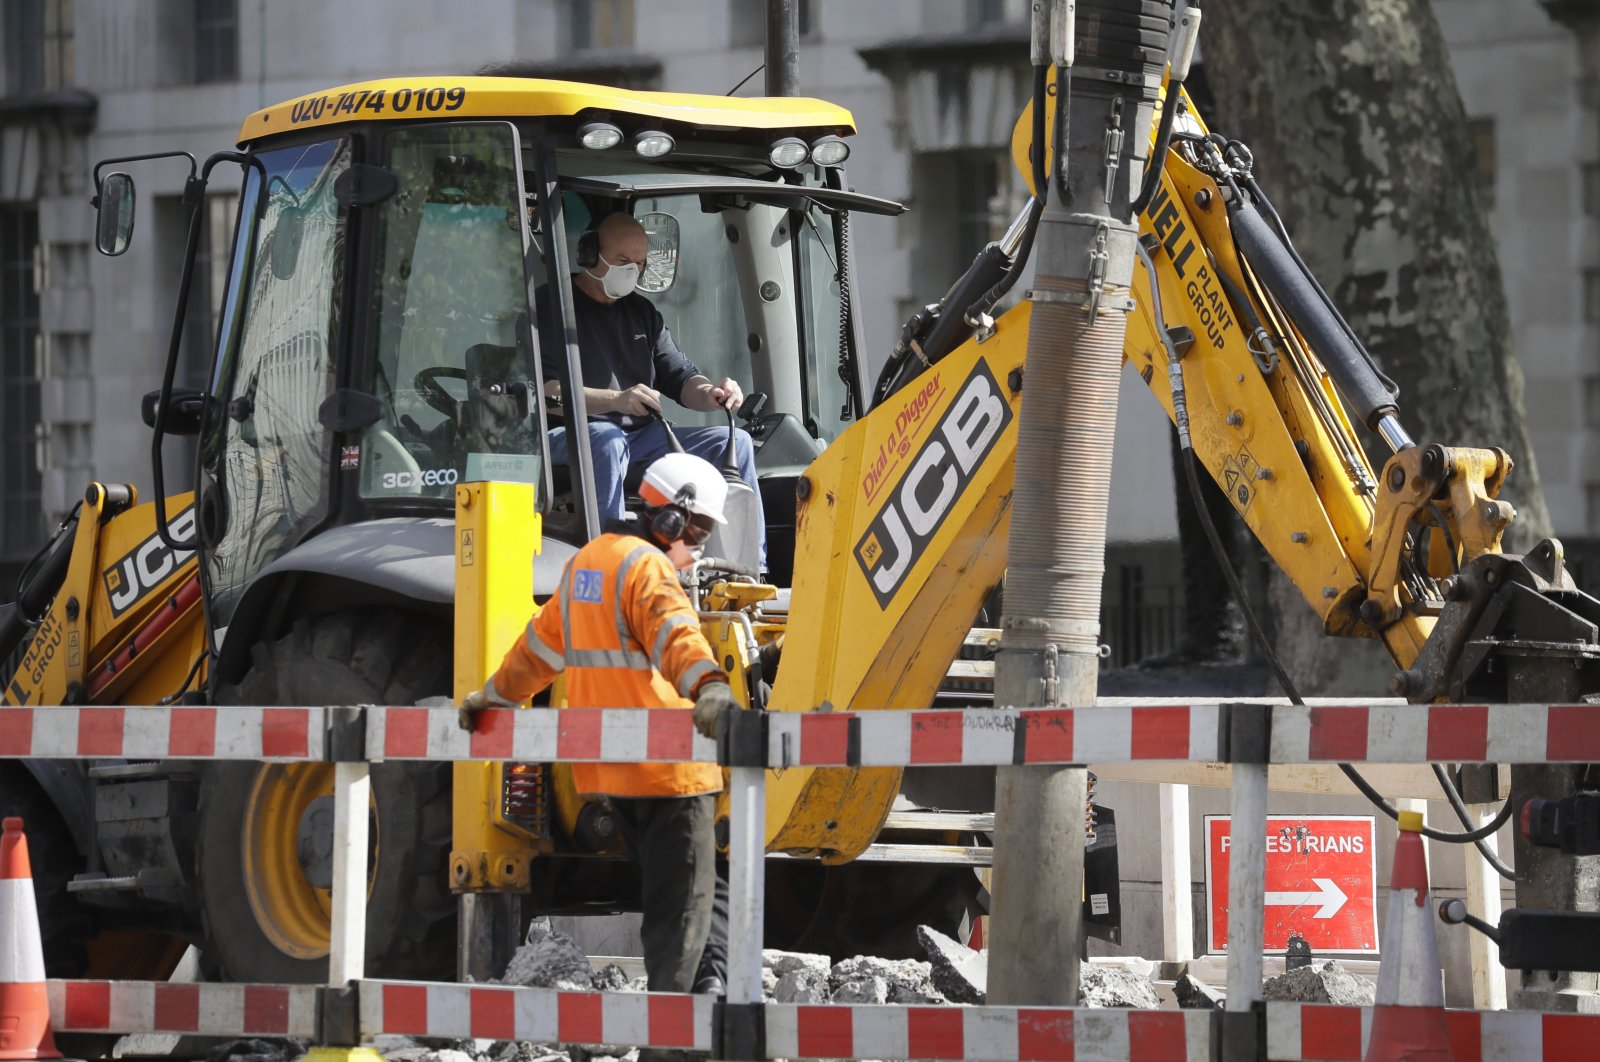 Workers wear face masks to protect against the coronavirus as they work on a road in London, May 4, 2020. (AP Photo)